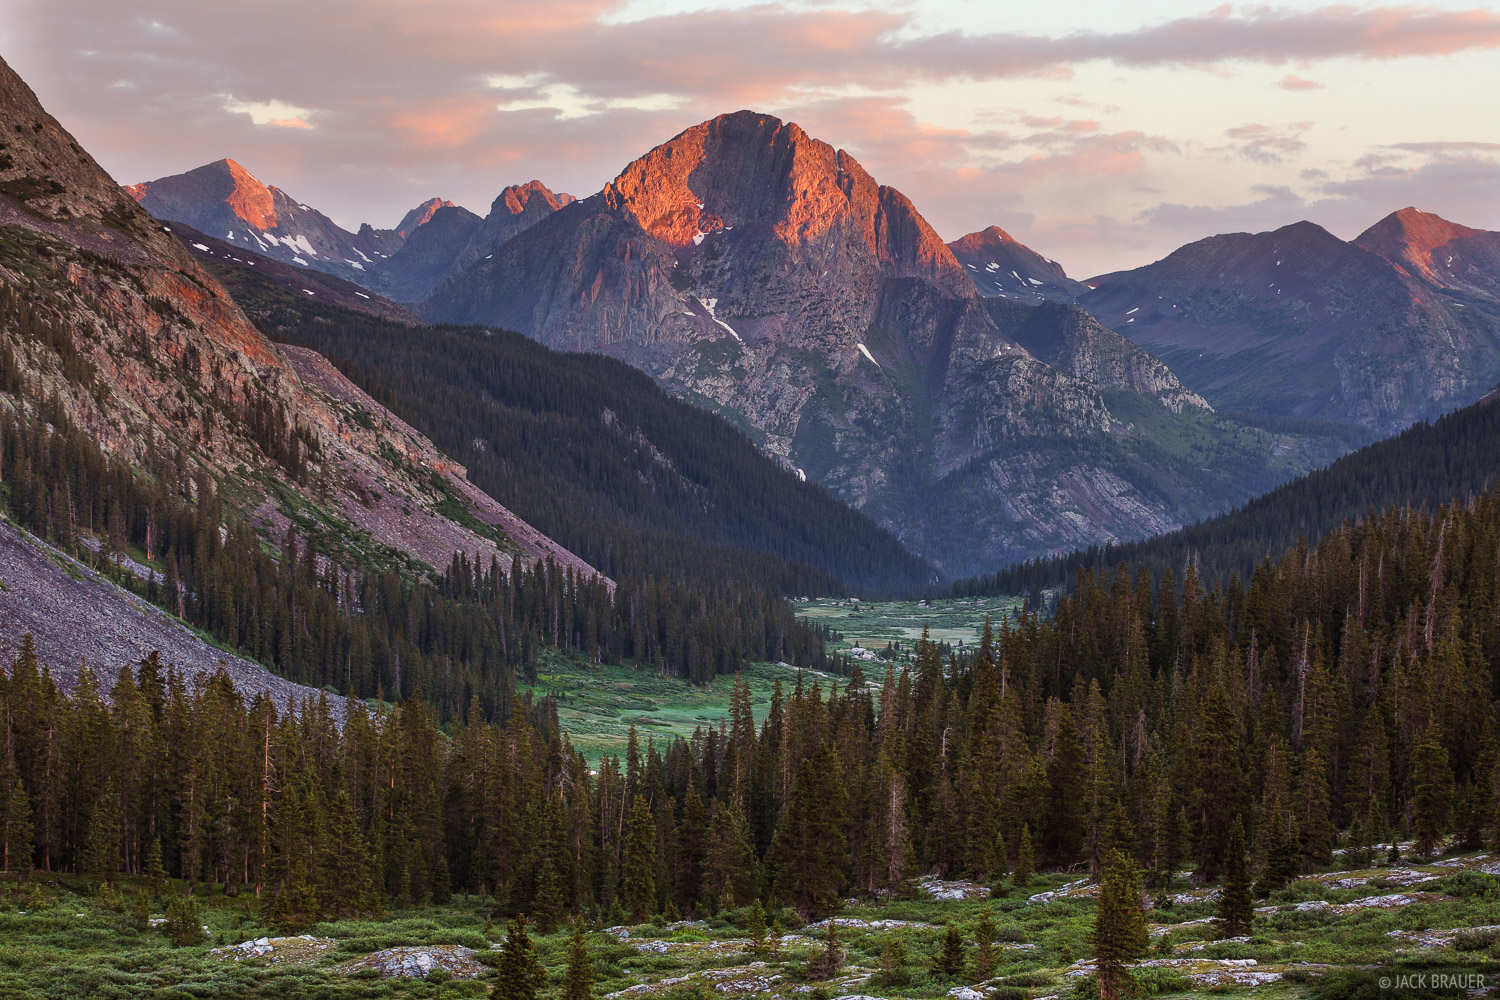 Sunrise alpenglow light on The Guardian (13,617 ft.), looking down Rock Creek, deep in the Weminuche Wilderness.